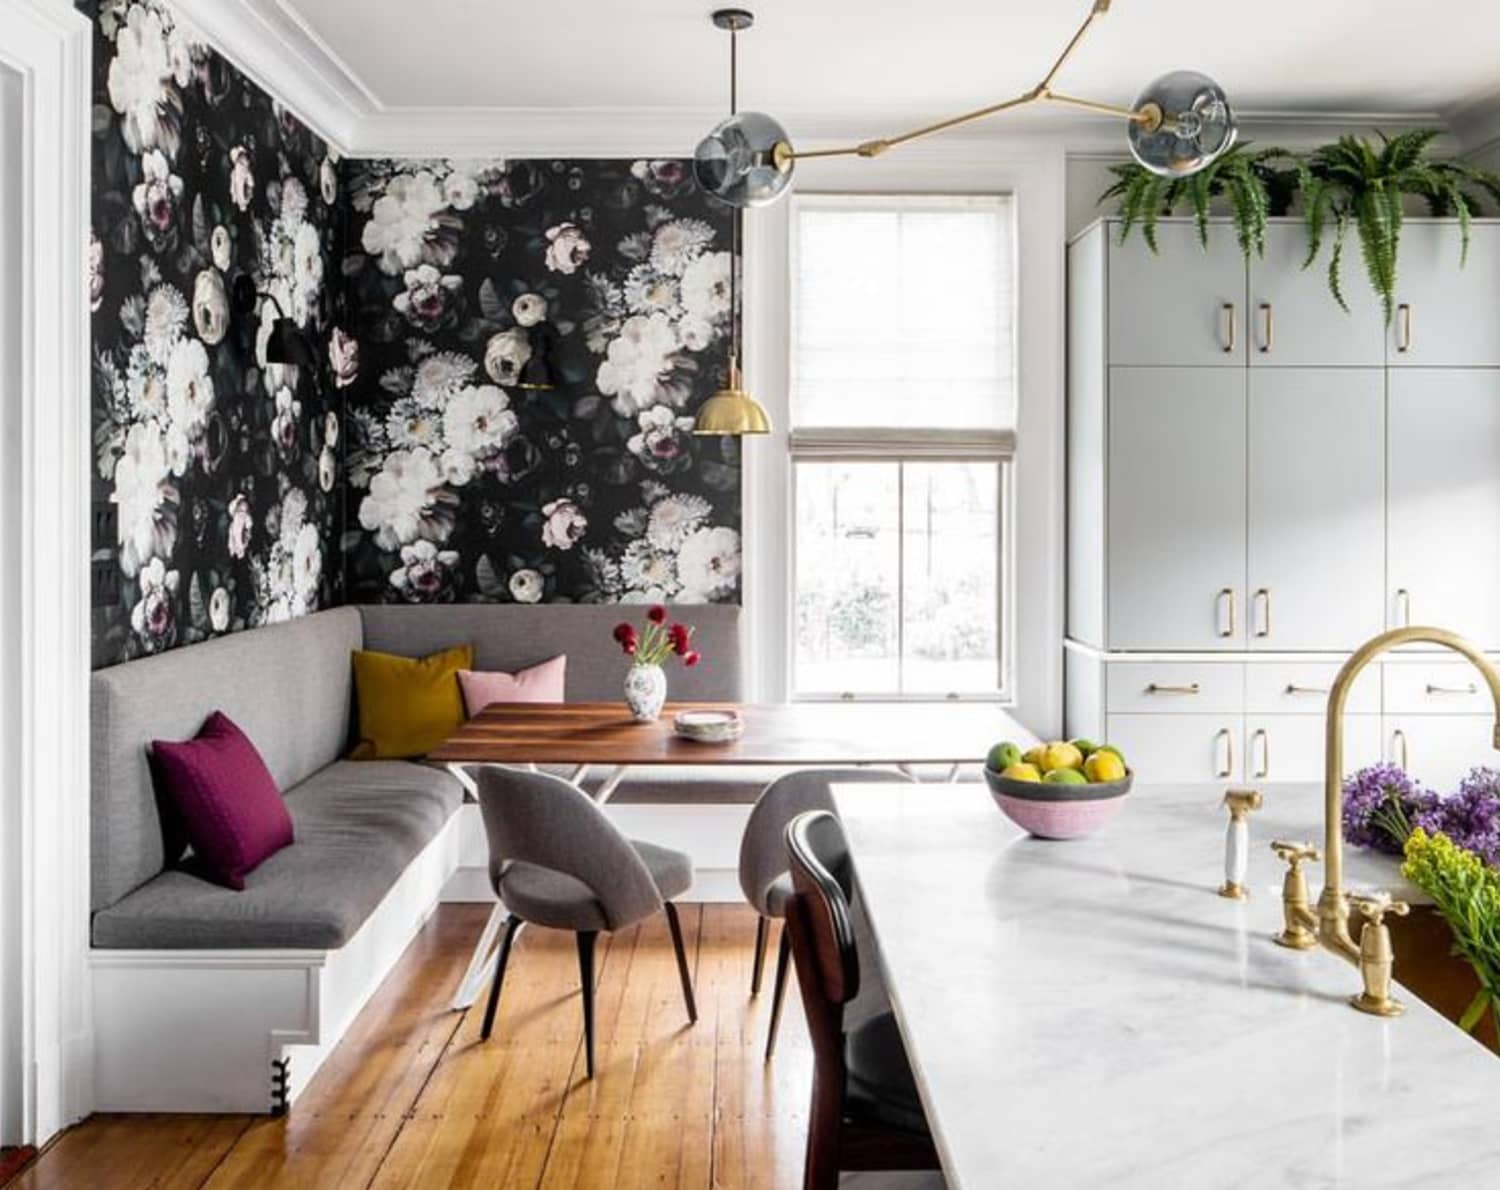 Outrageously Gorgeous Wallpapered Rooms On Instagram This ...